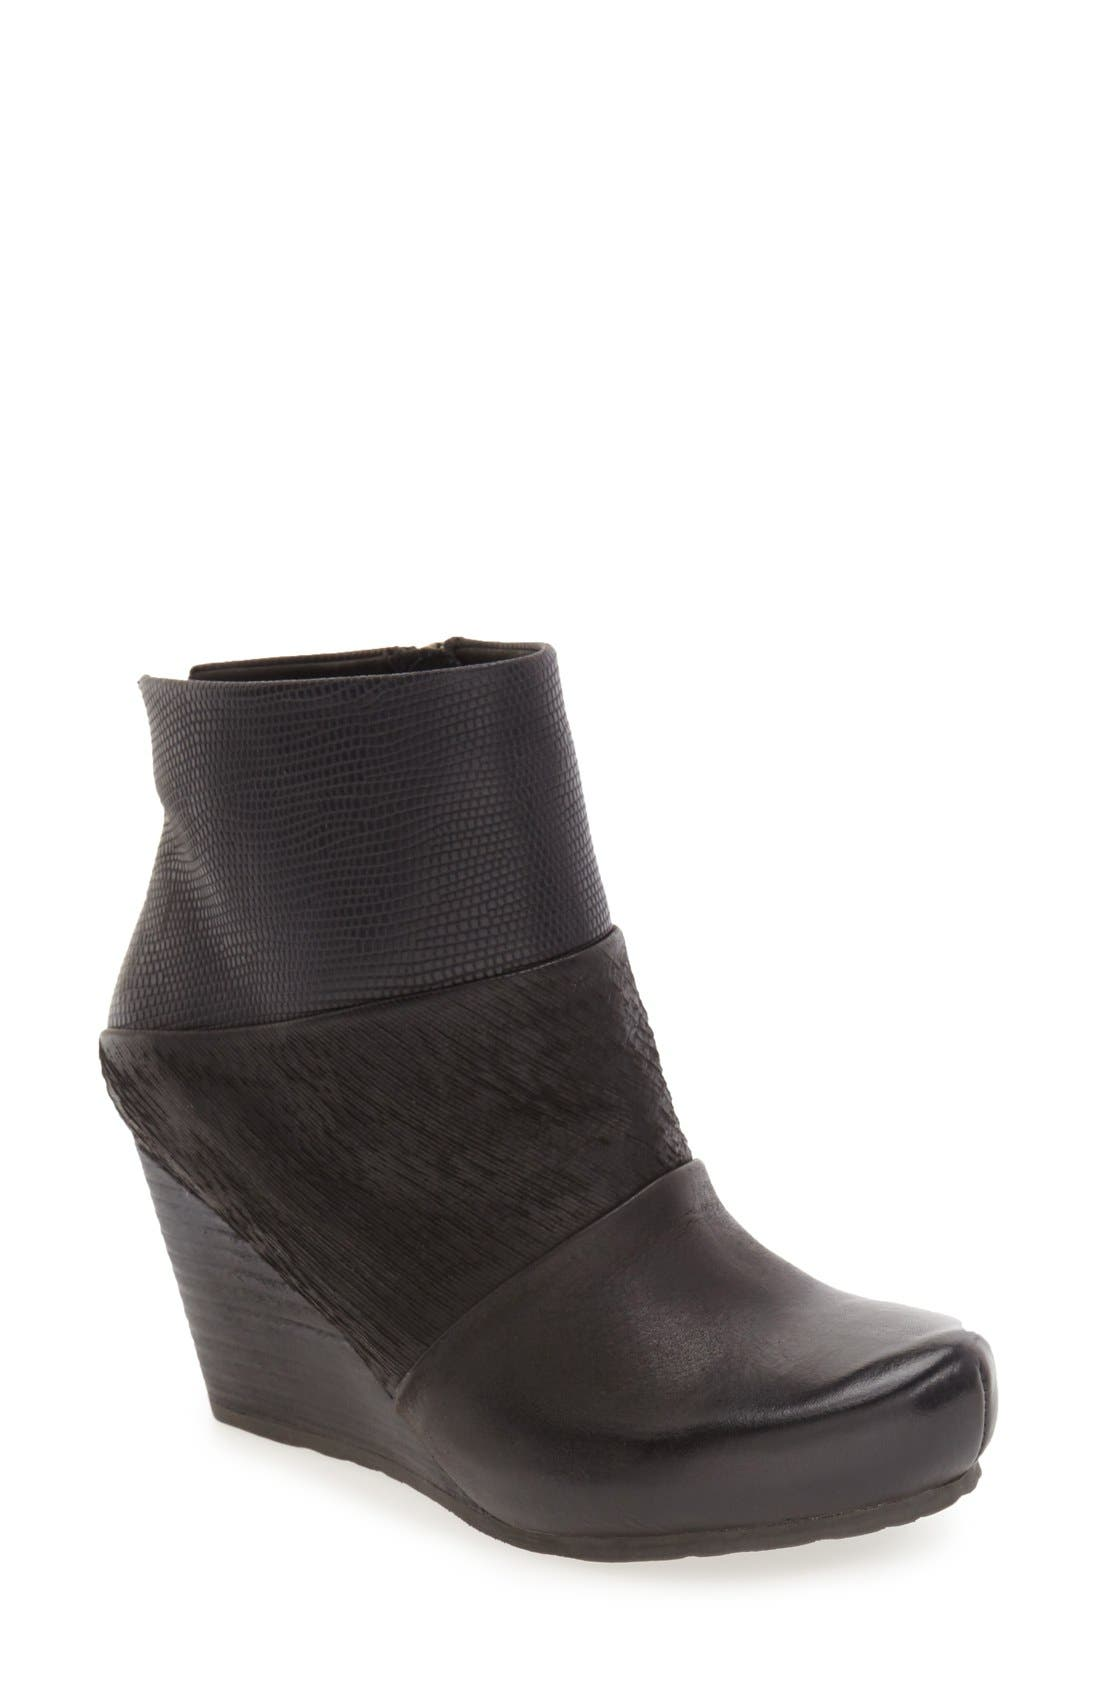 'Dharma' Wedge Bootie,                         Main,                         color, 001